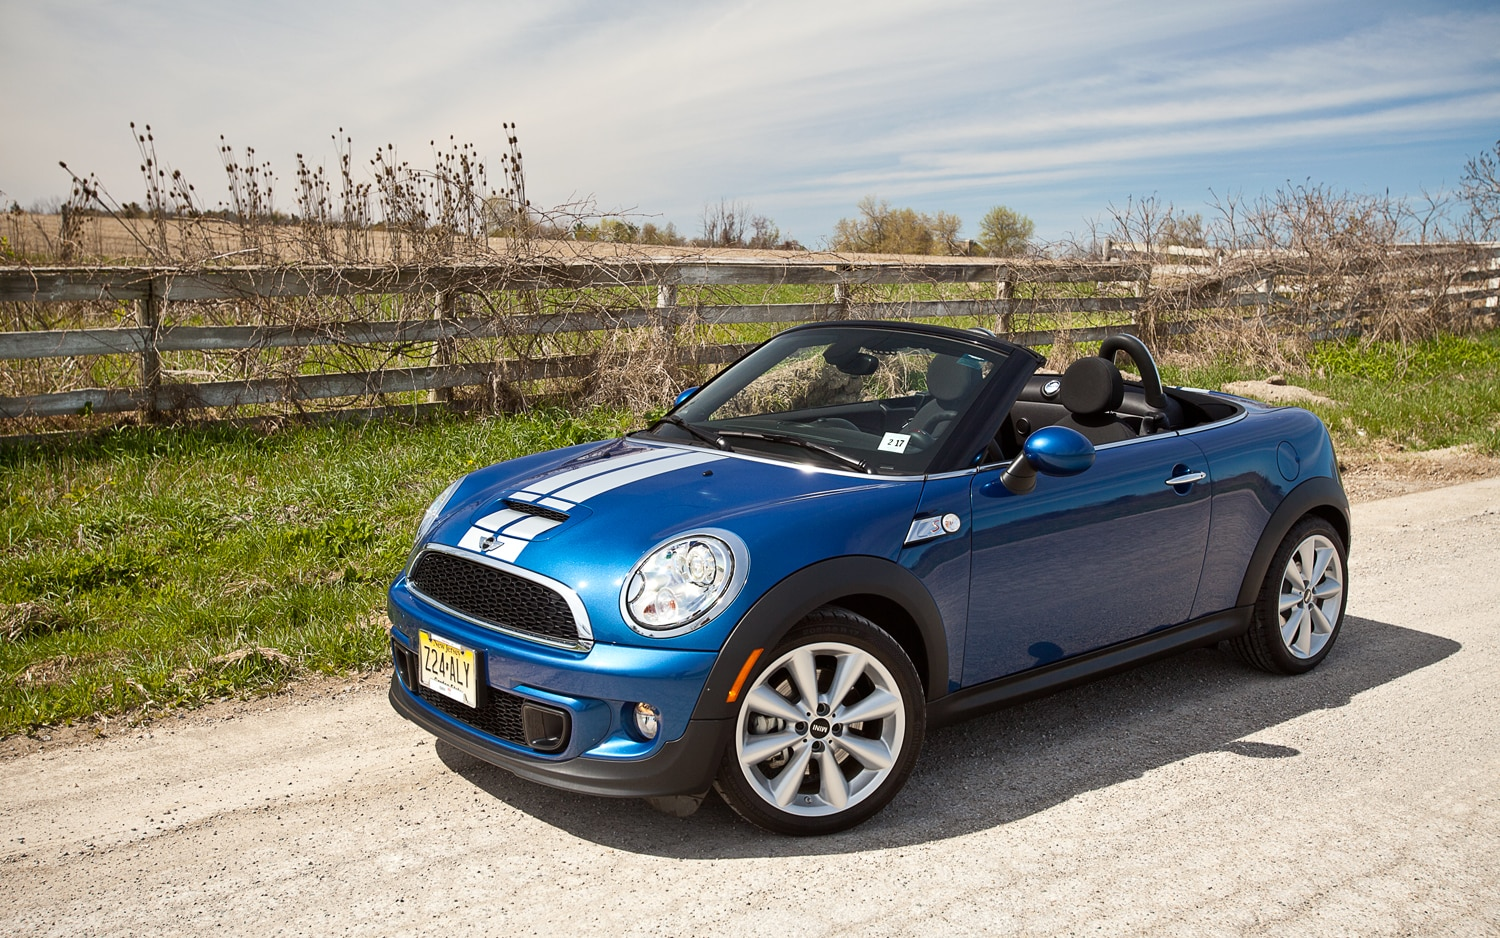 2012 Mini Cooper S Roadster Front Left Side View 21